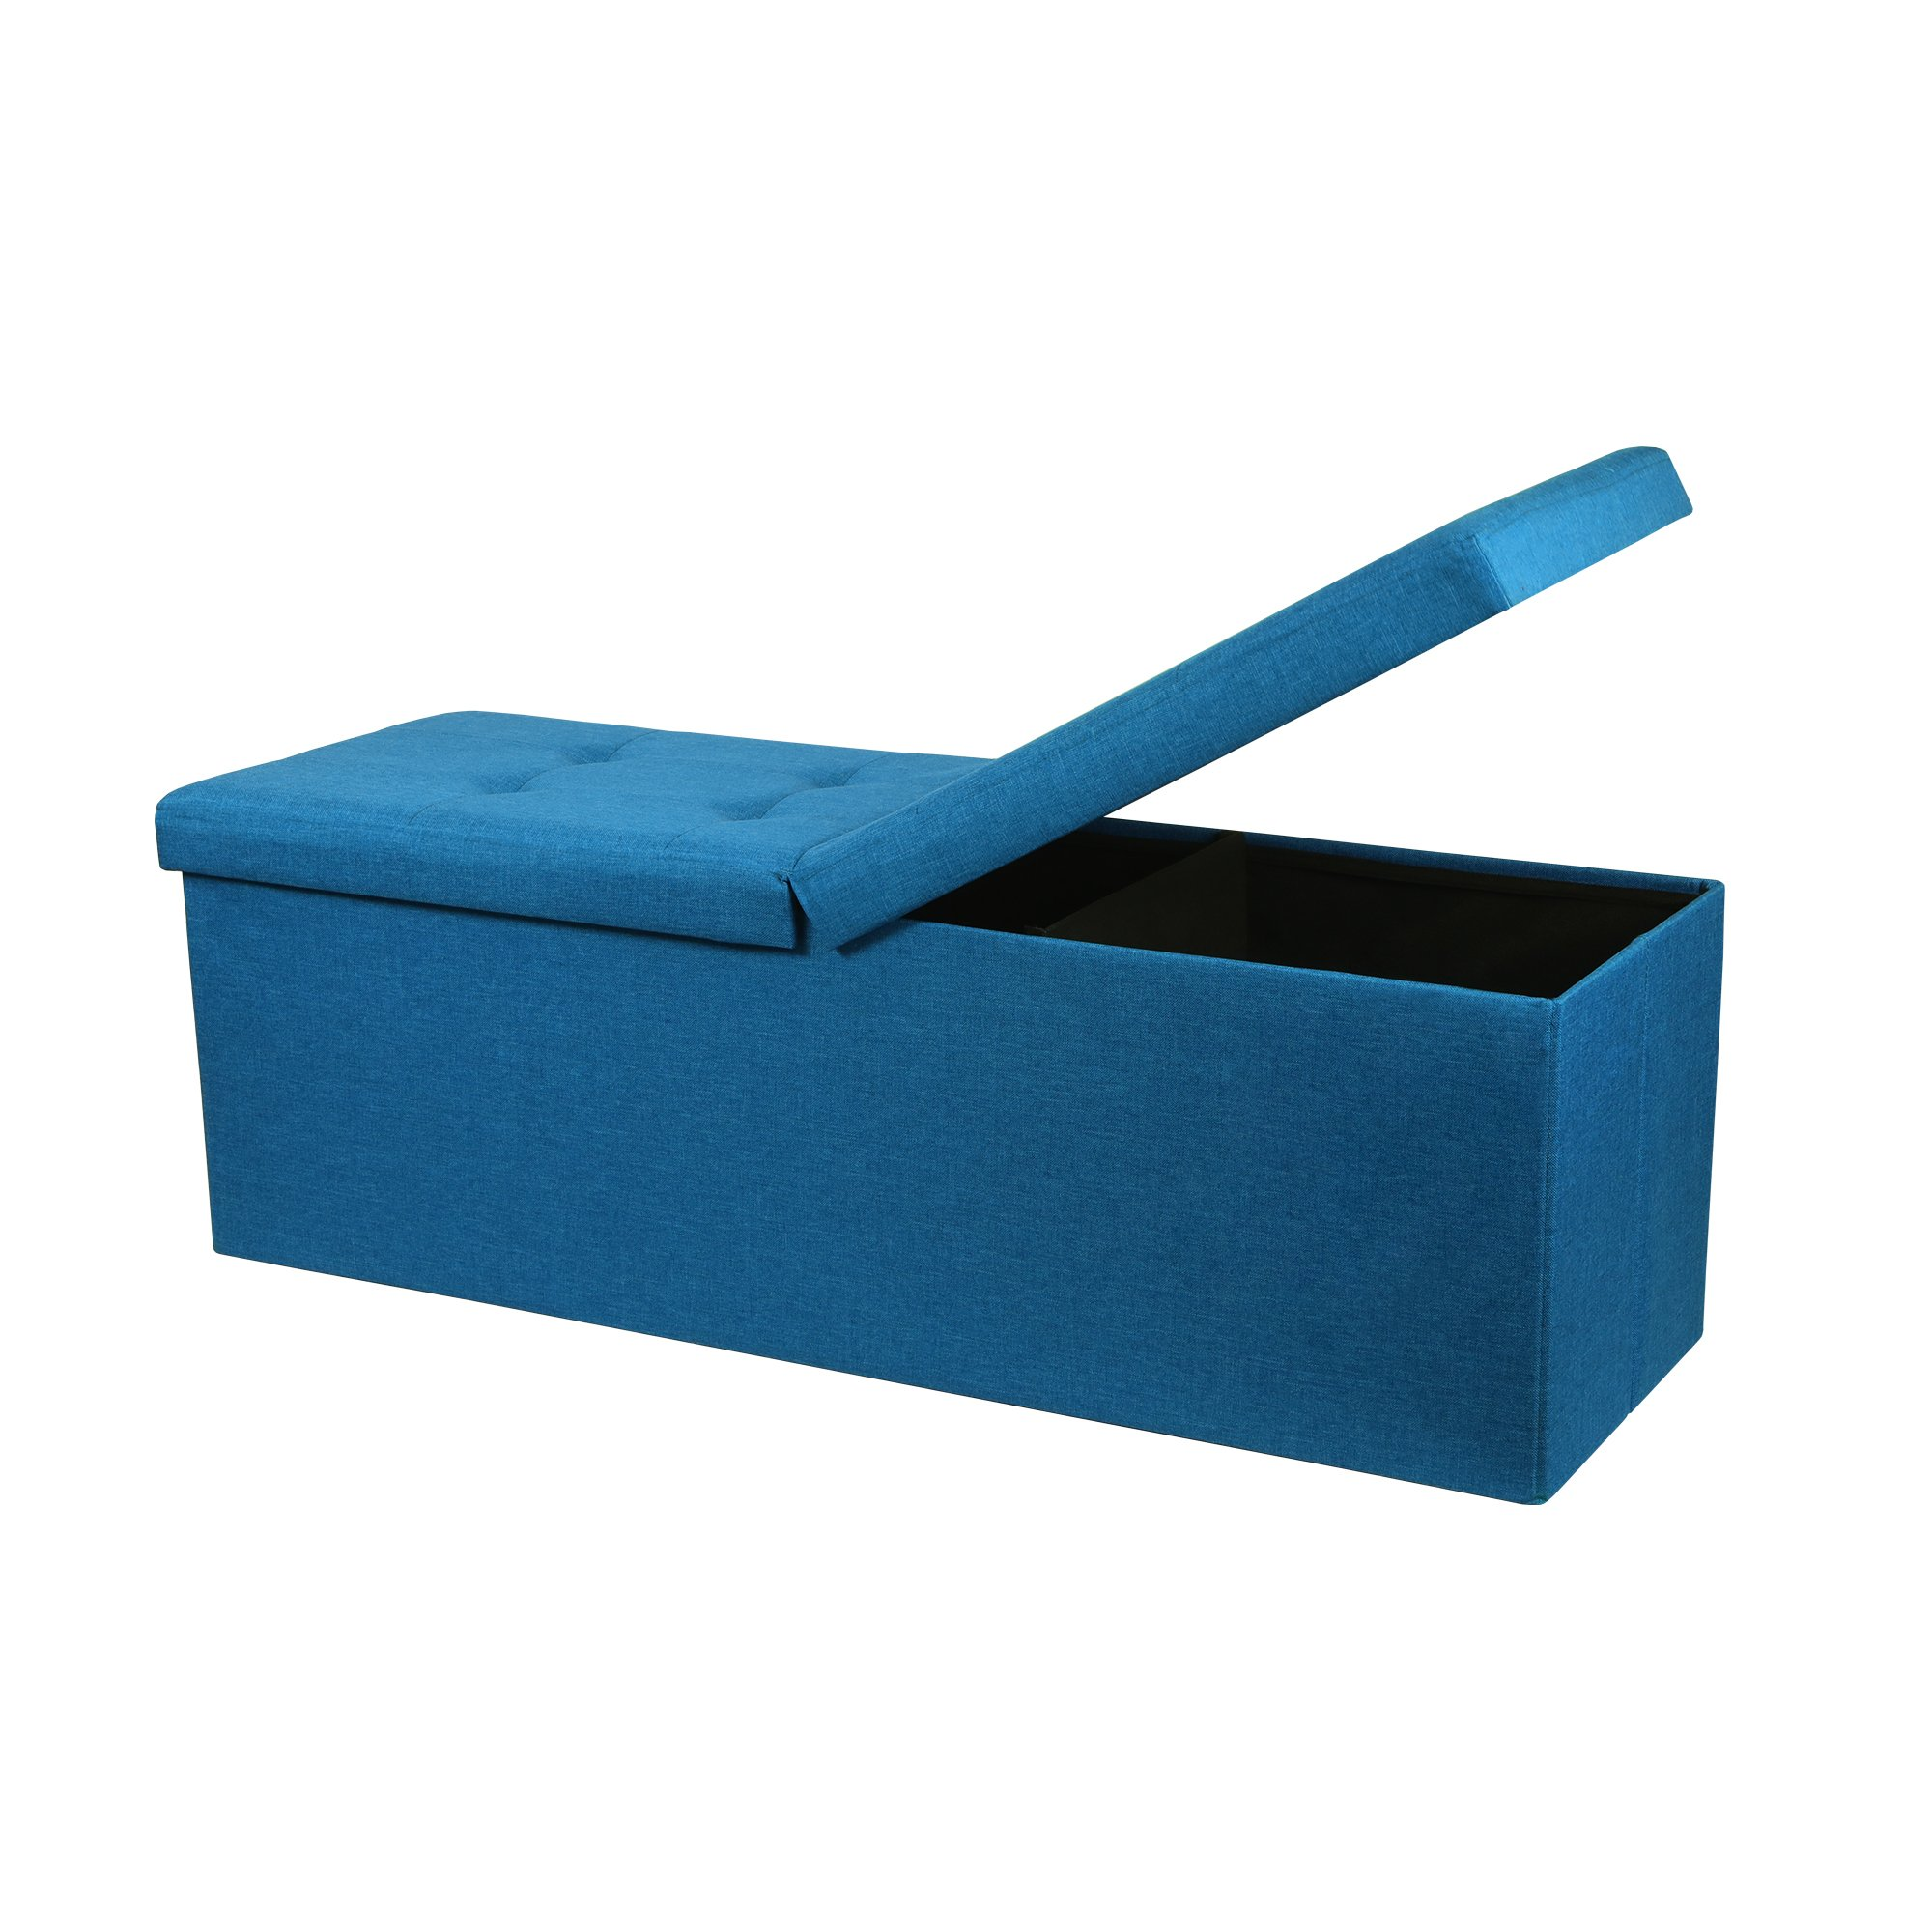 Otto & Ben 45'' Storage Ottoman Folding Upholstered Tufted Bench Foot Rest, Royal Blue